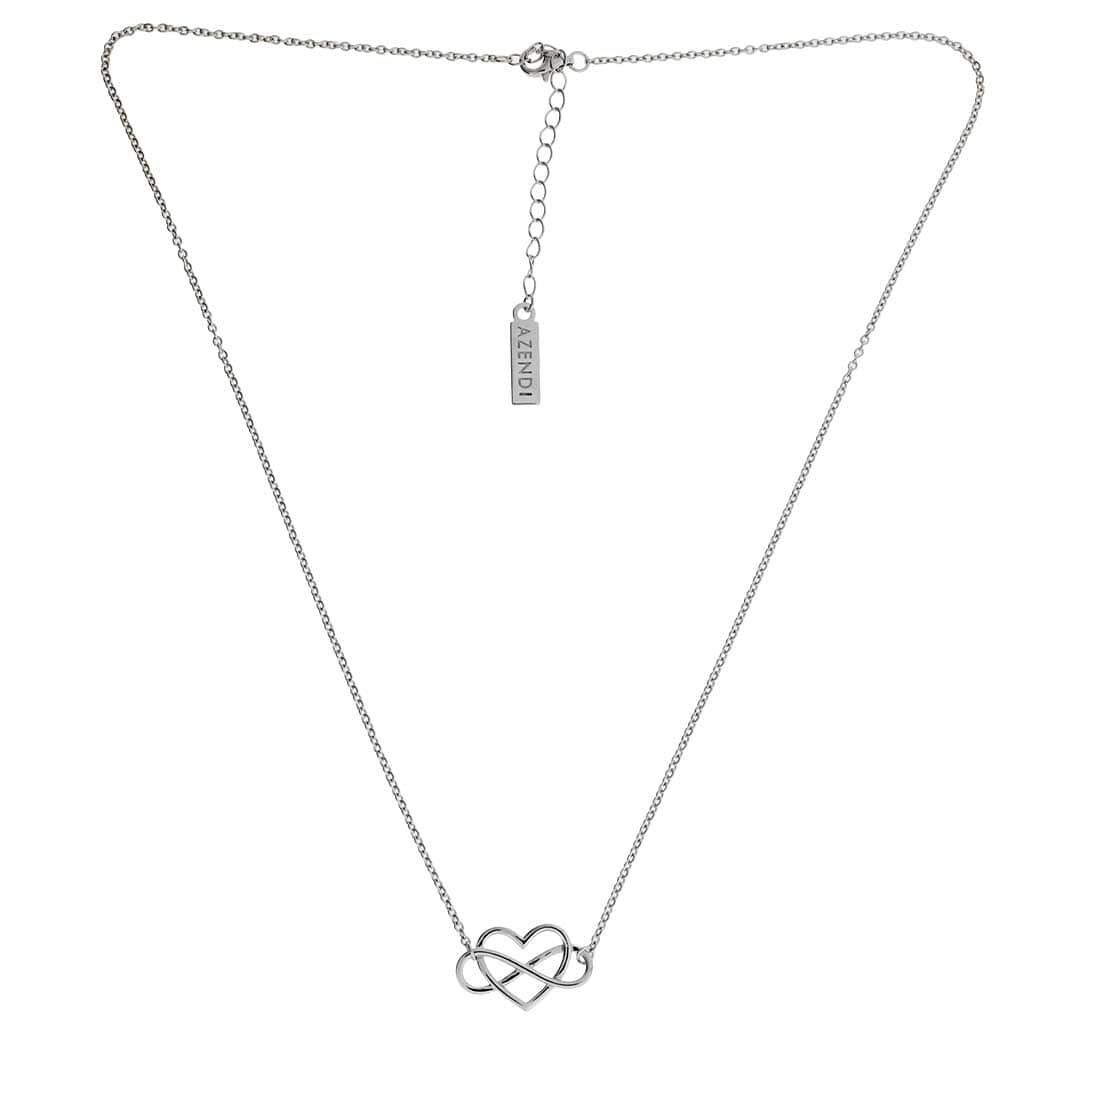 Silver Infinity Heart Interlinked Necklace